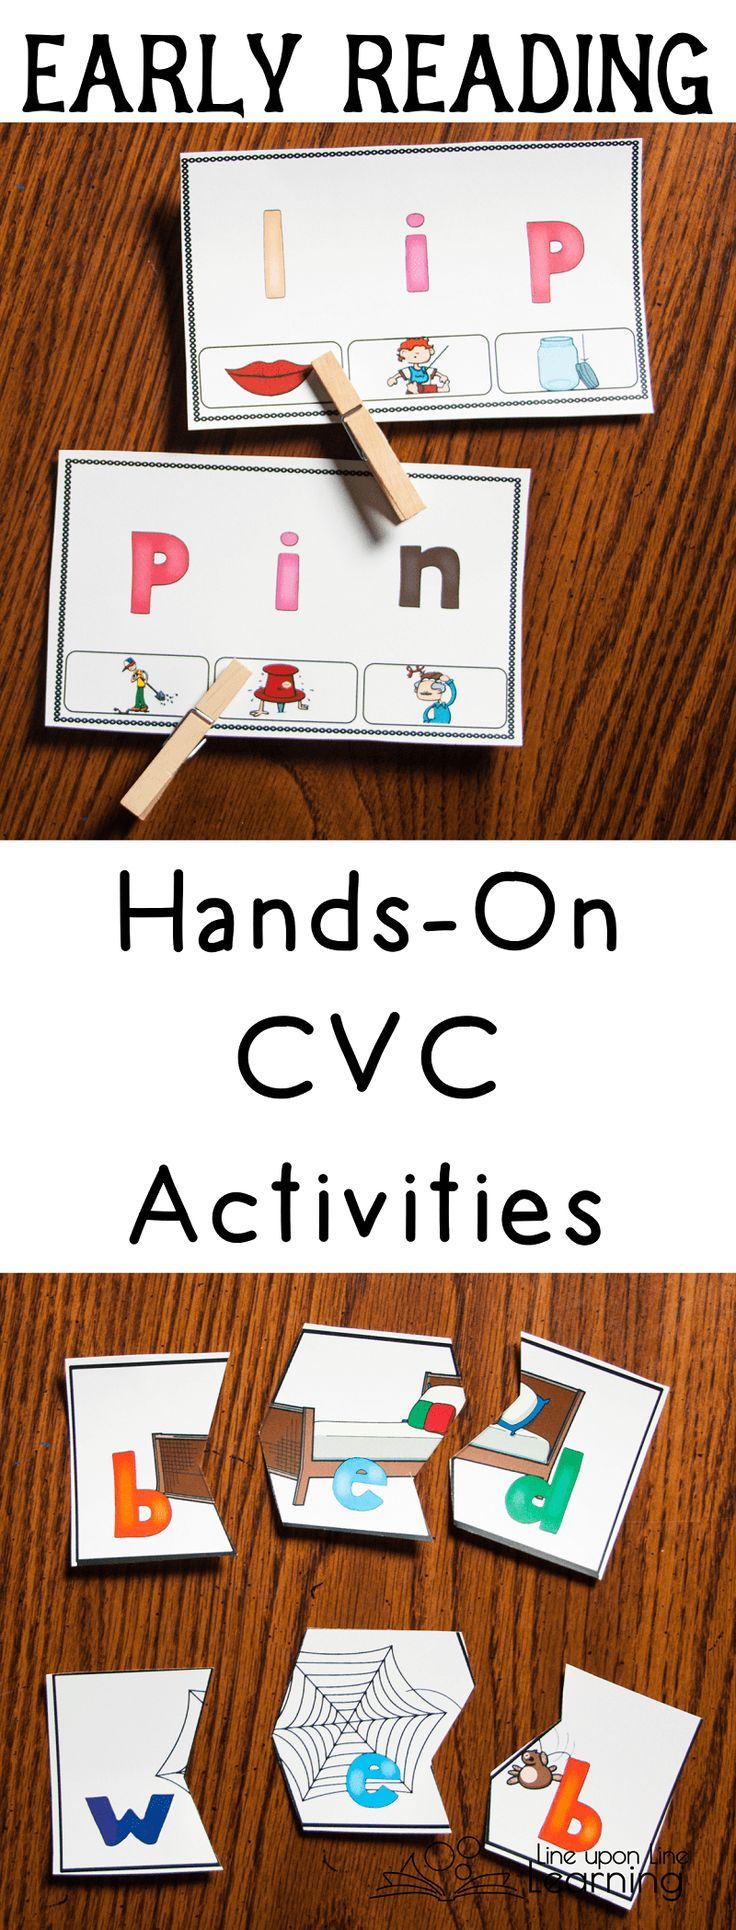 Clip cards and word + image puzzles give fine motor and great early reading practice in these hands-on CVC activities.